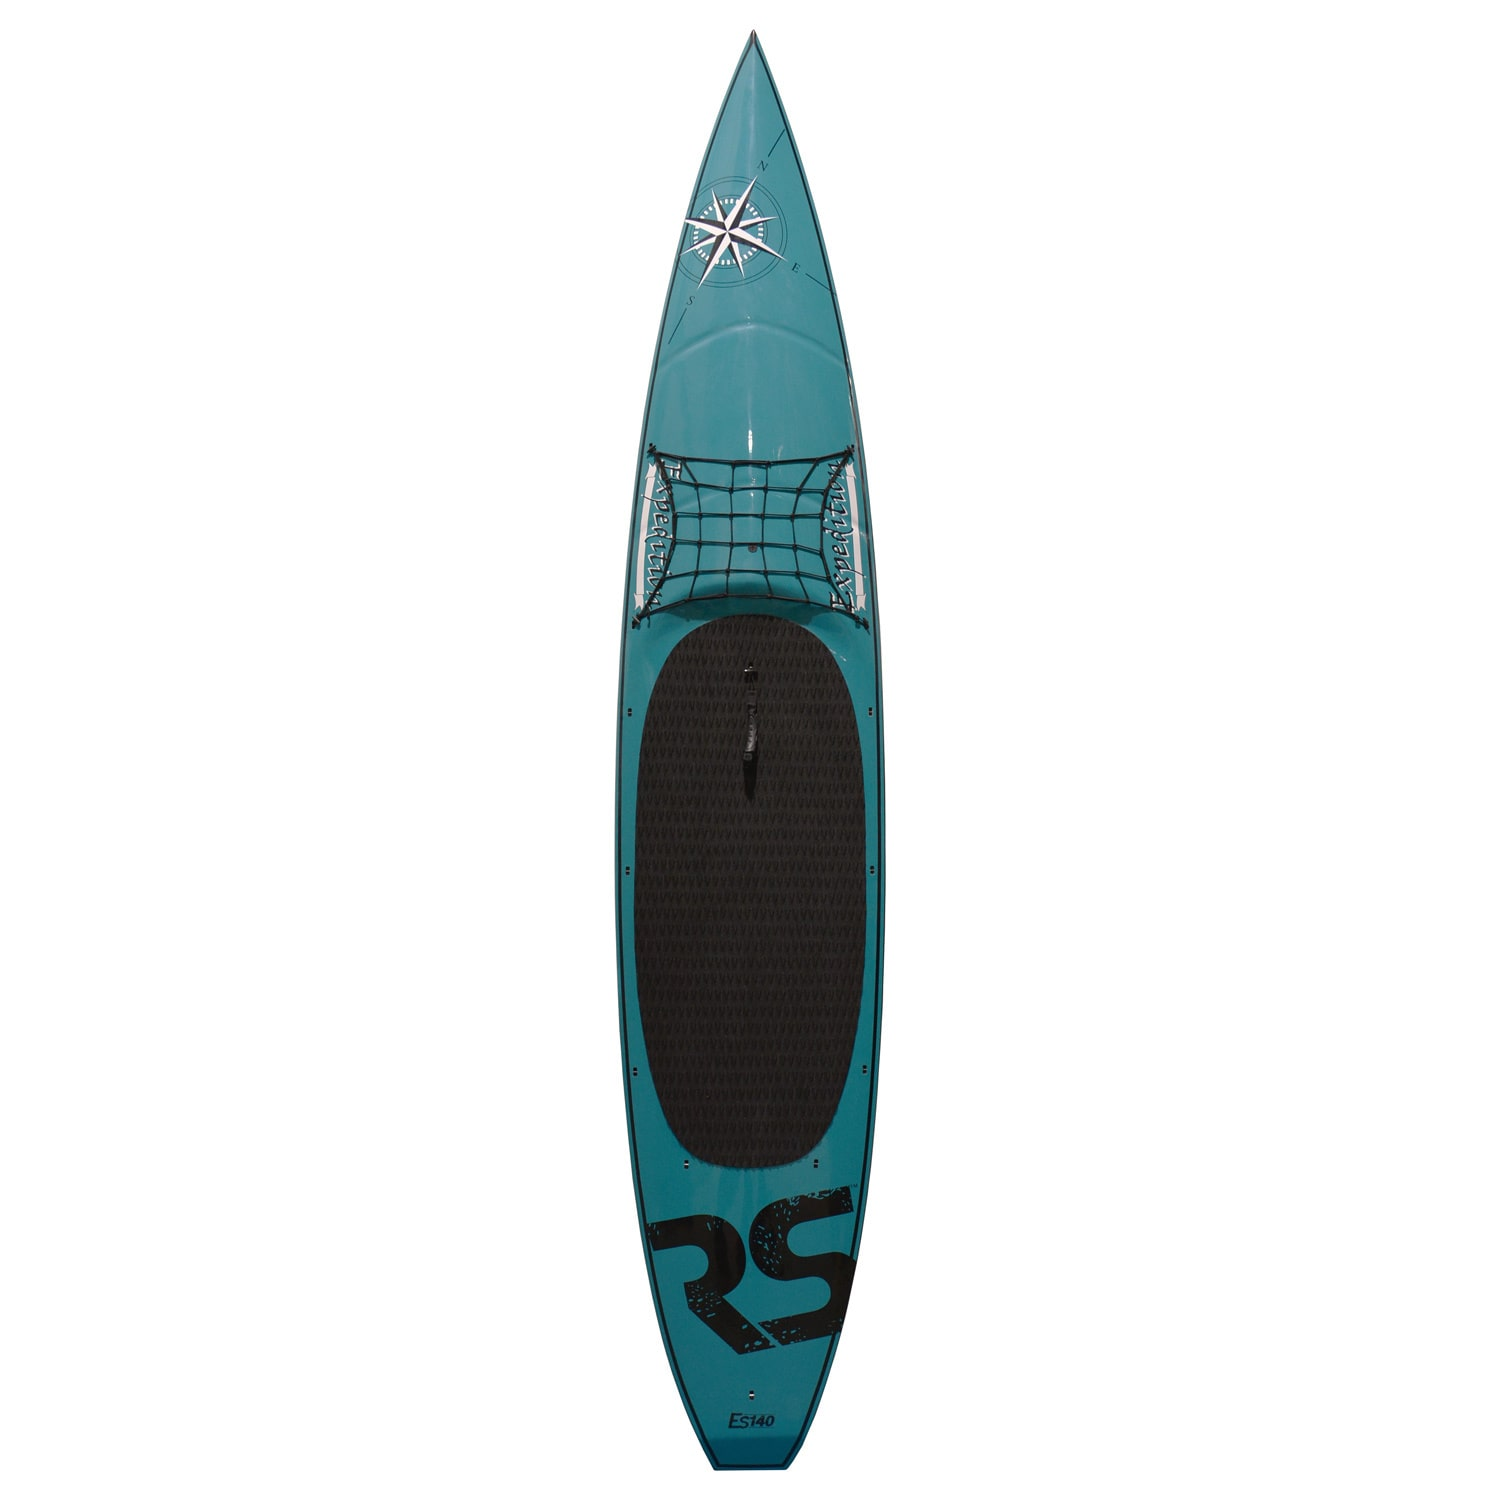 Rave Sports Expedition 14-foot Stand Up Paddle Board (SUP) by Overstock